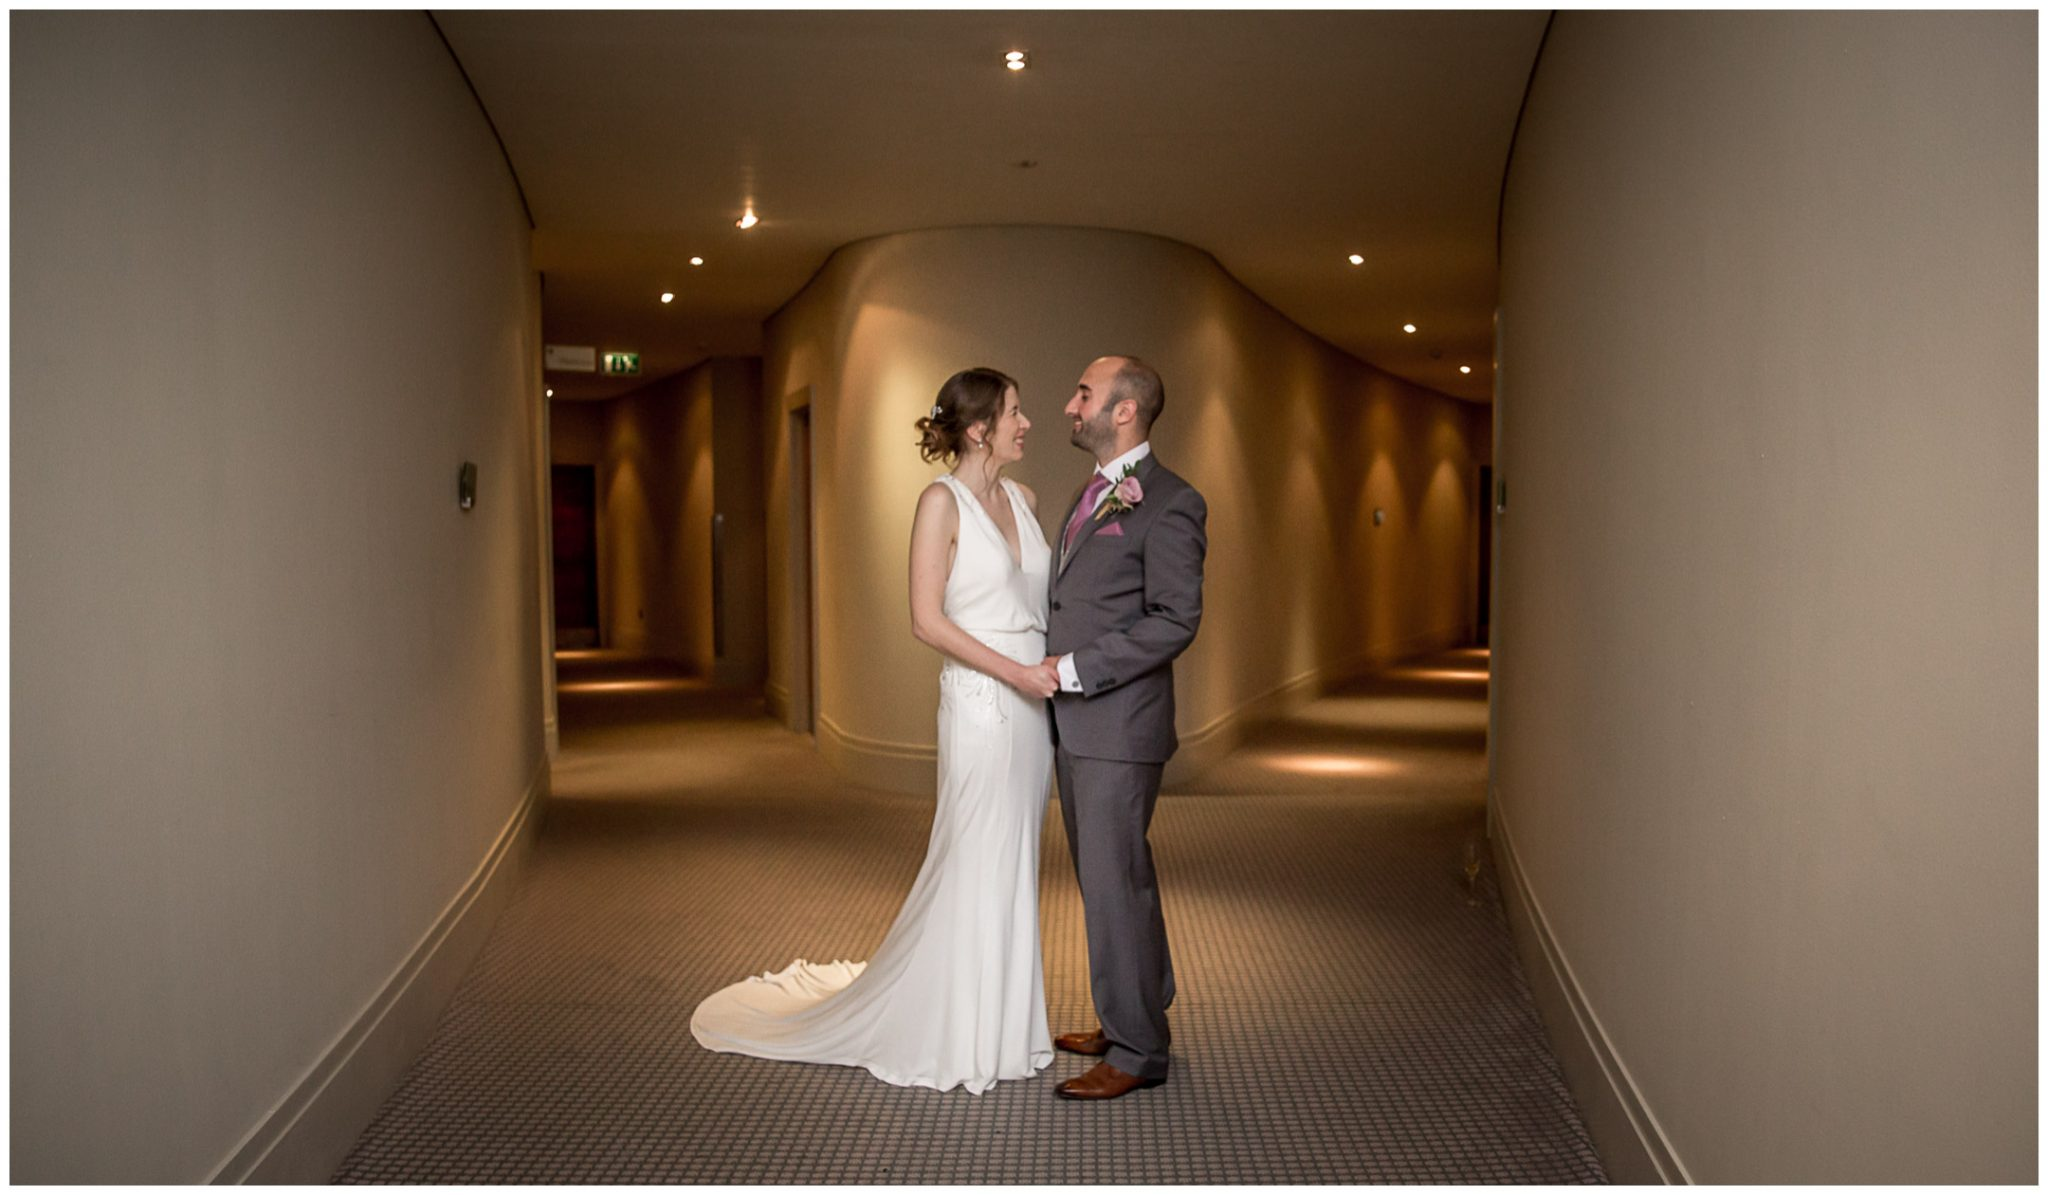 Couple portraits in the modern hotel interior corridors